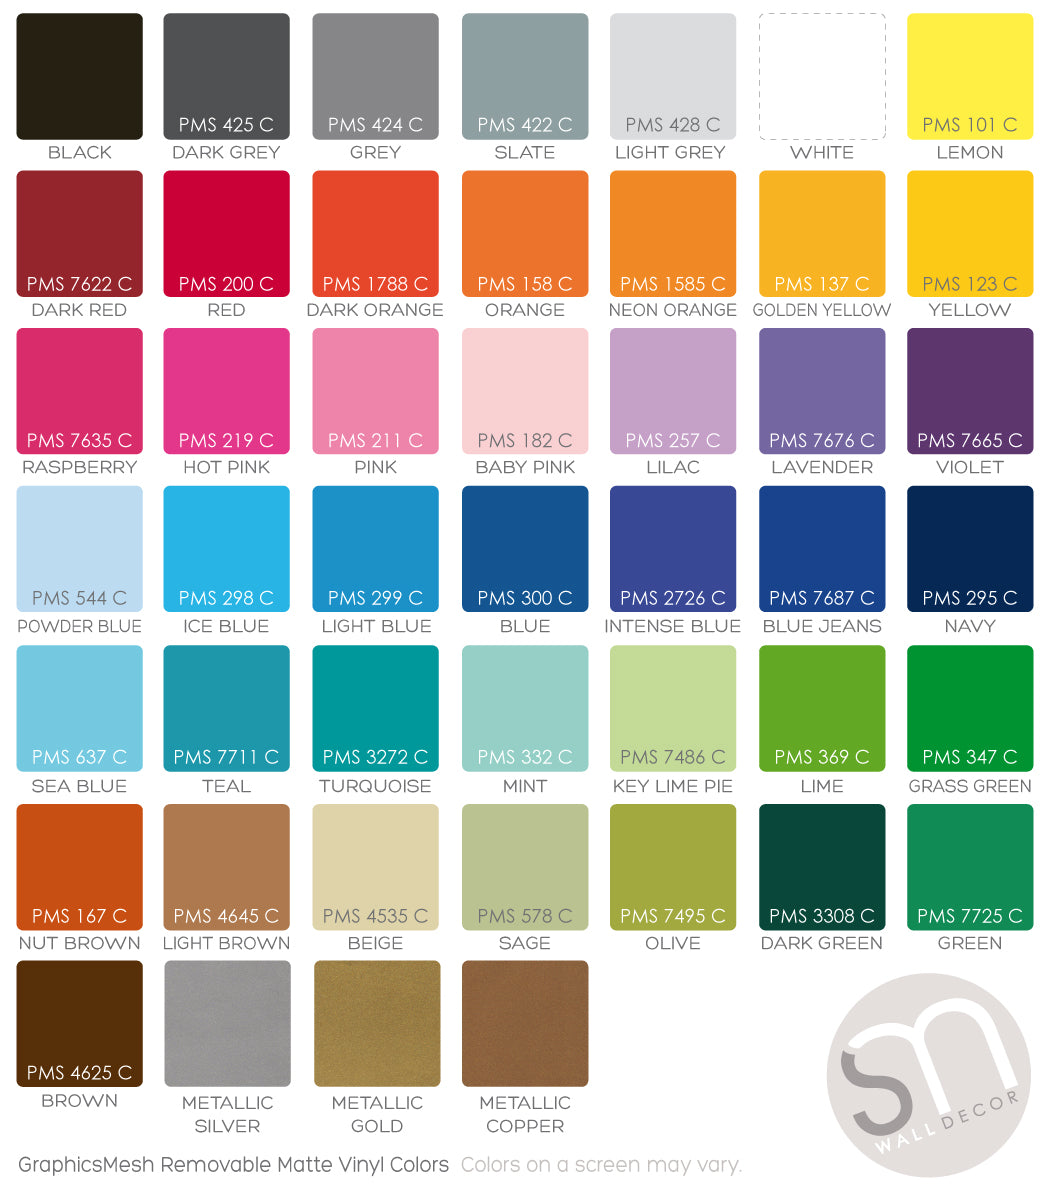 Wall Decals Color Chart Removable Matte Vinyl Graphicsmesh